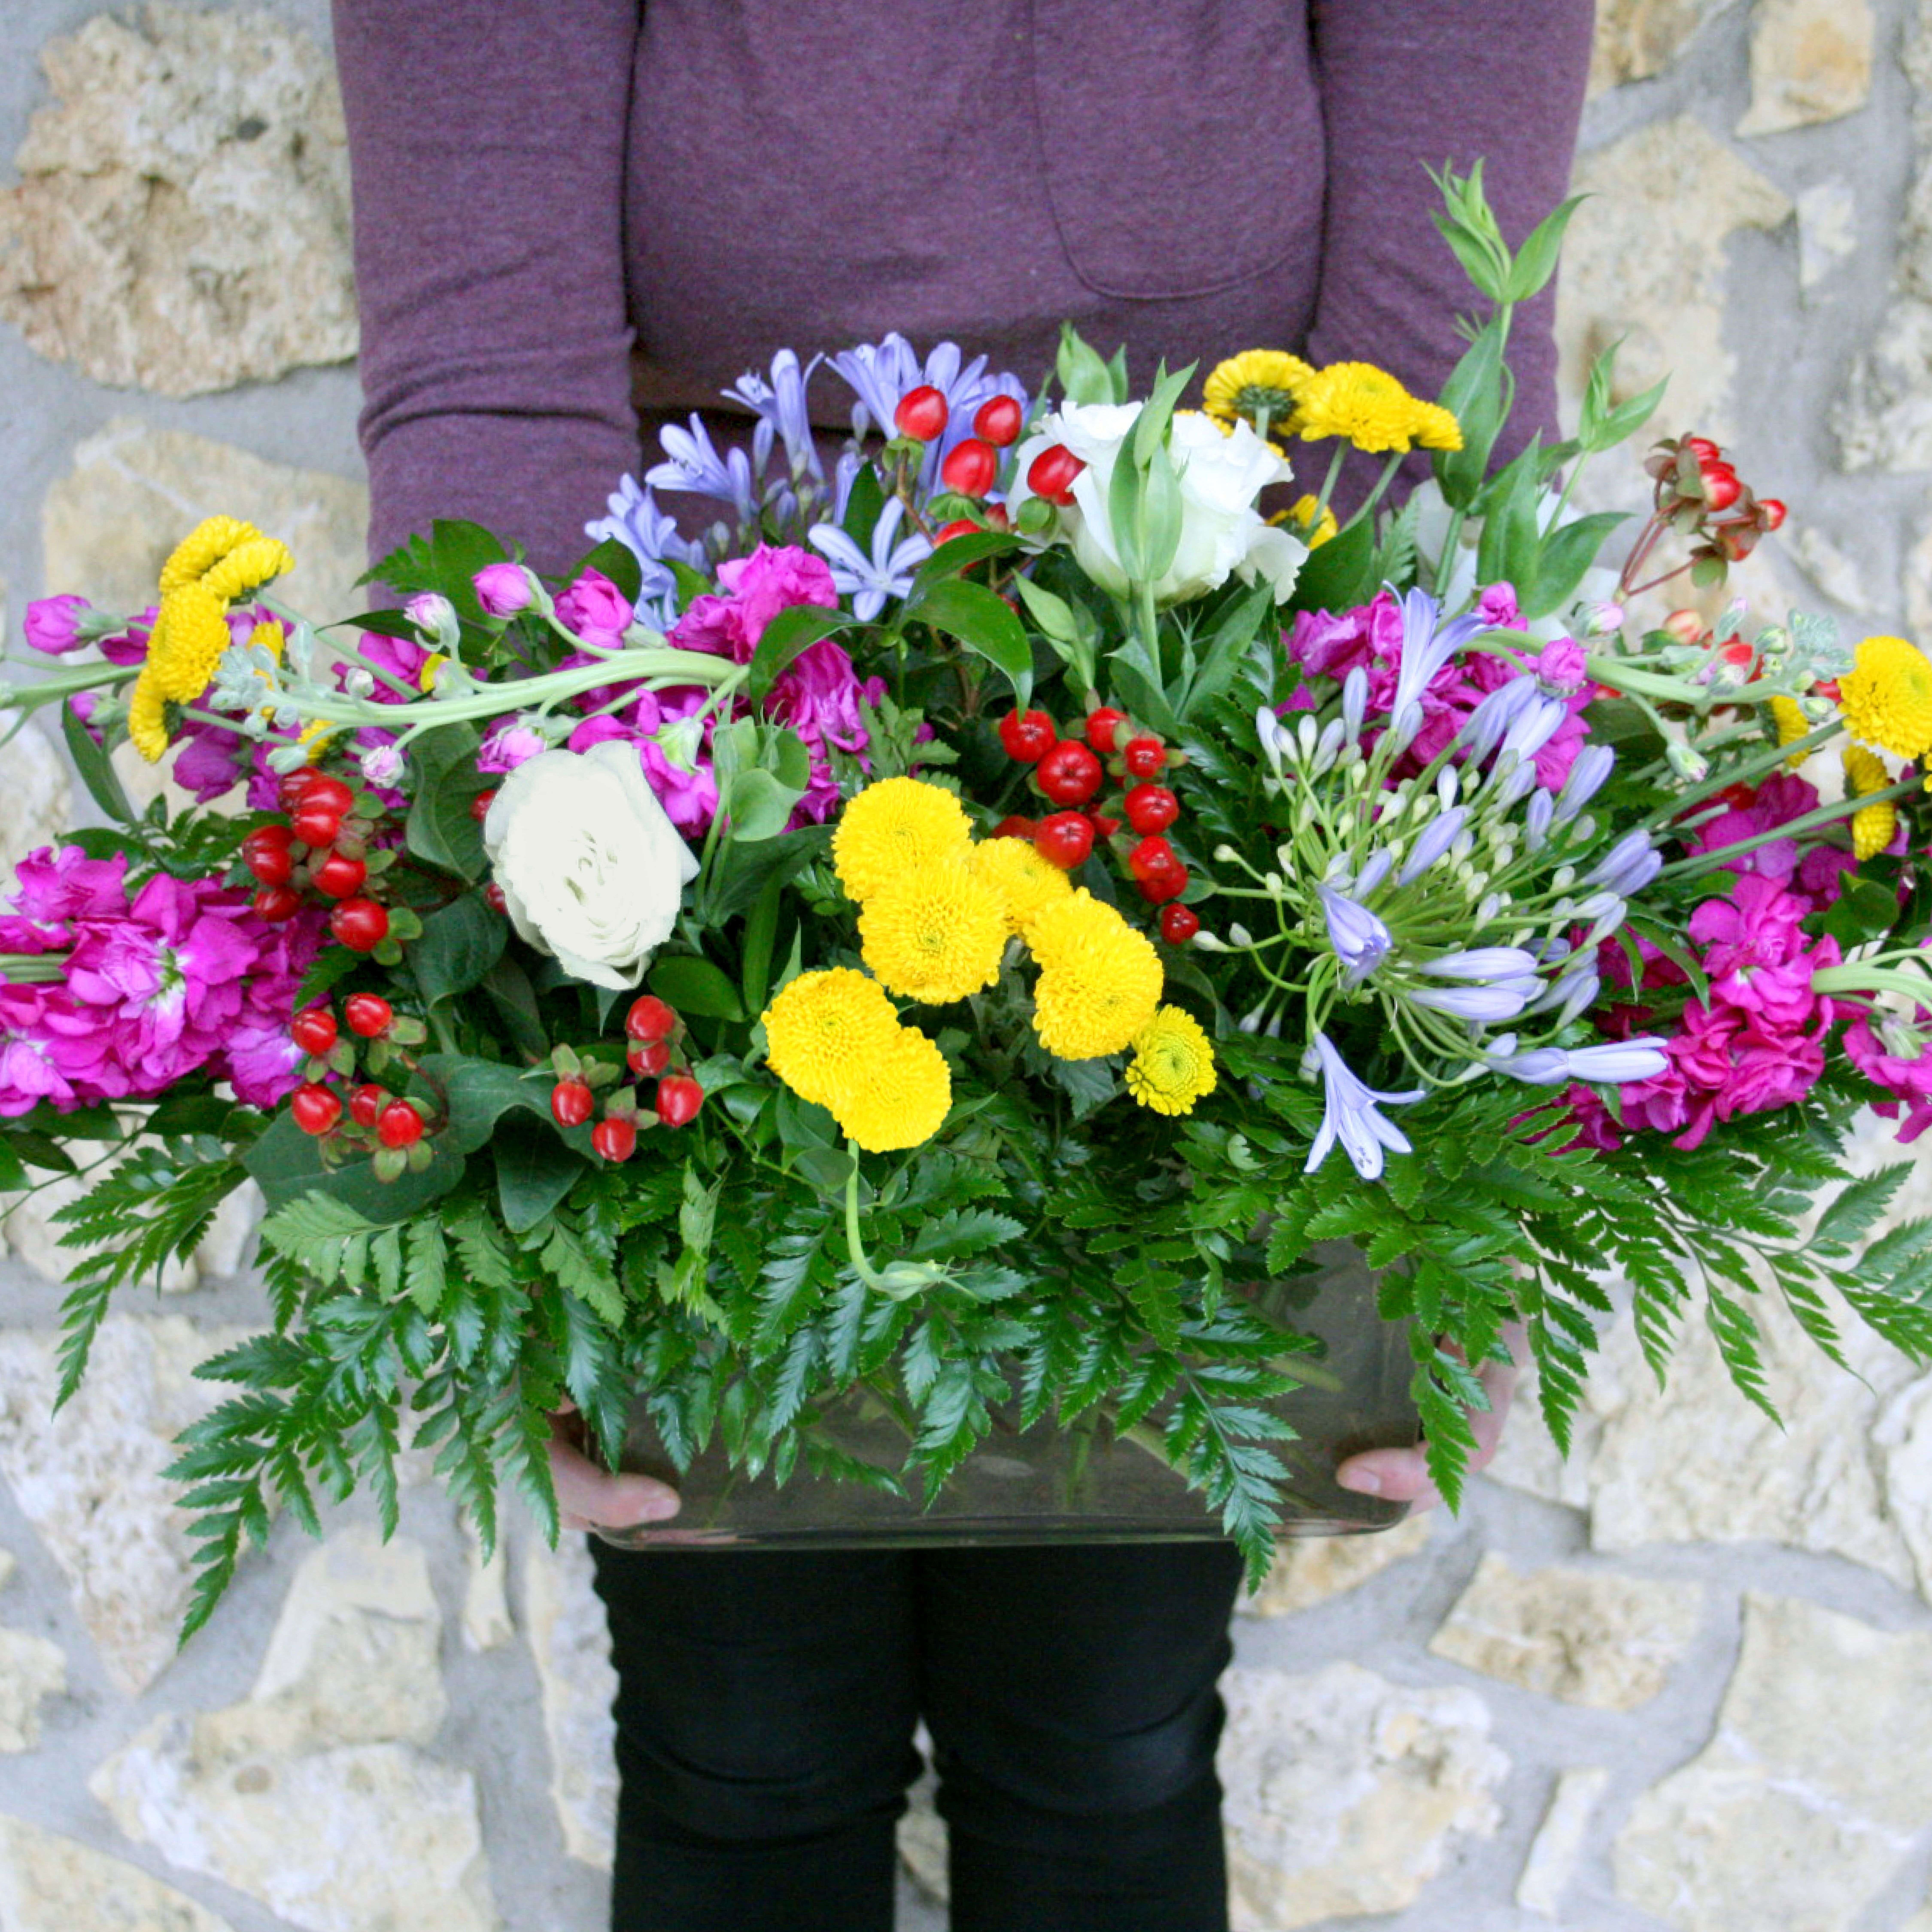 flower delivery austin texas 78744